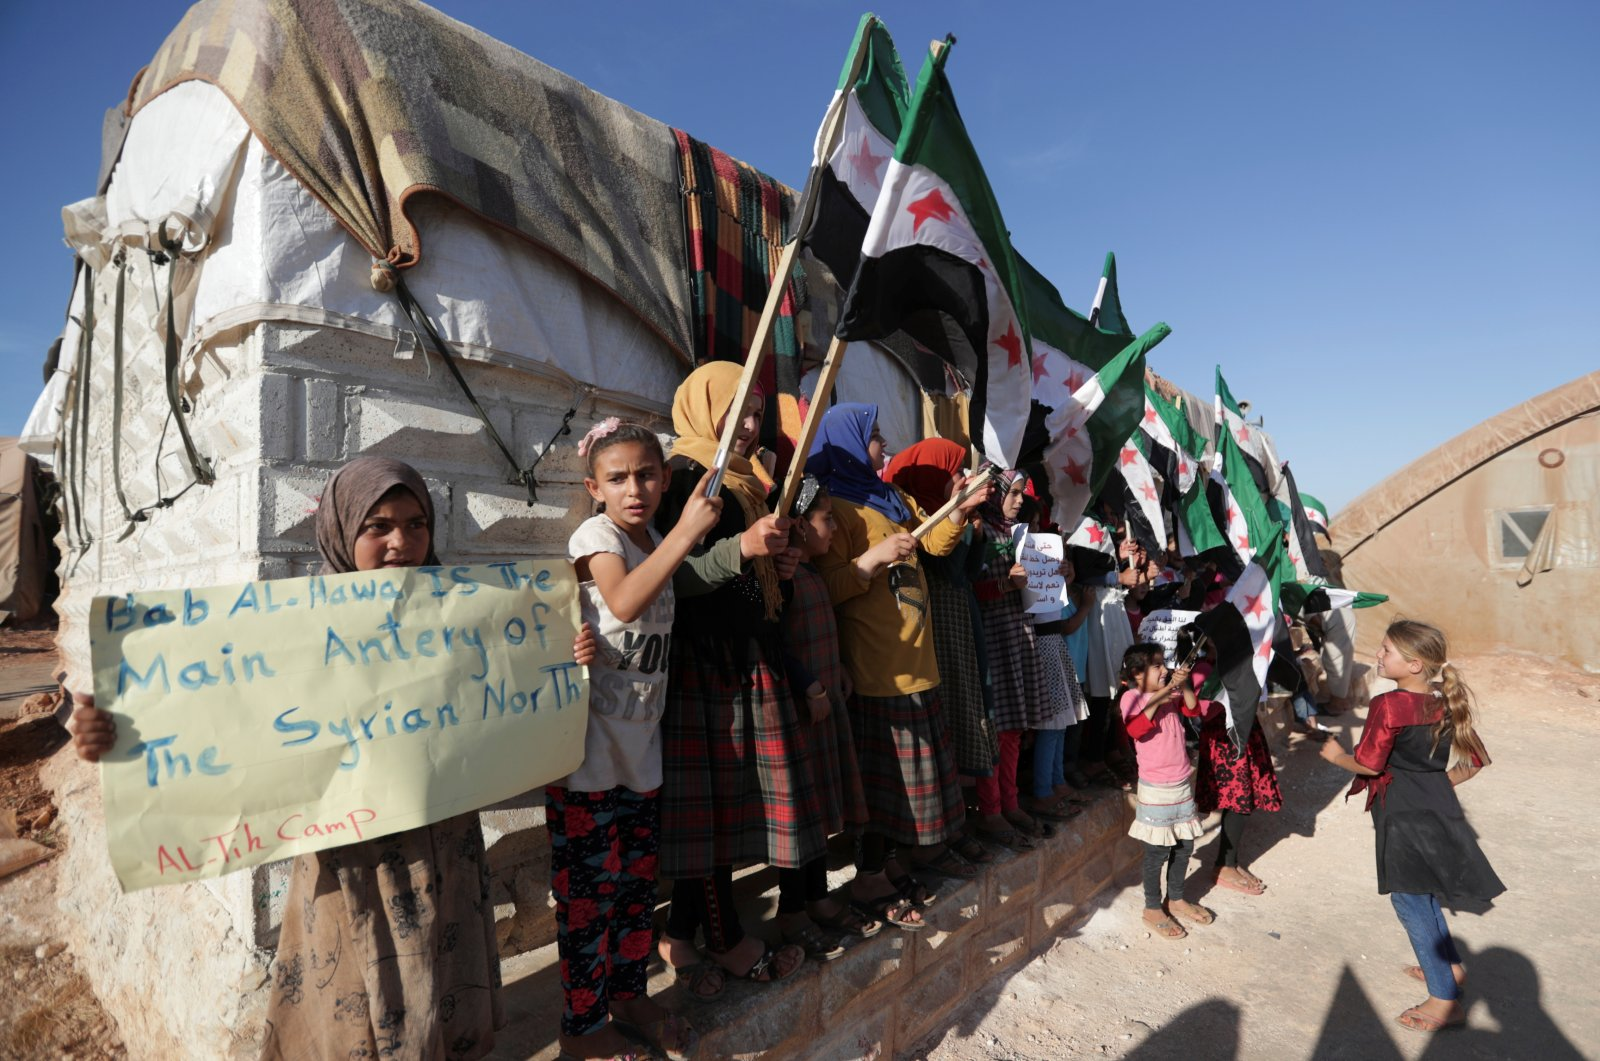 An internally displaced Syrian girl holds a sign during a protest against the closure of Bab al-Hawa crossing in the opposition-held Idlib, northwestern Syria, June 7, 2021. (REUTERS Photo)